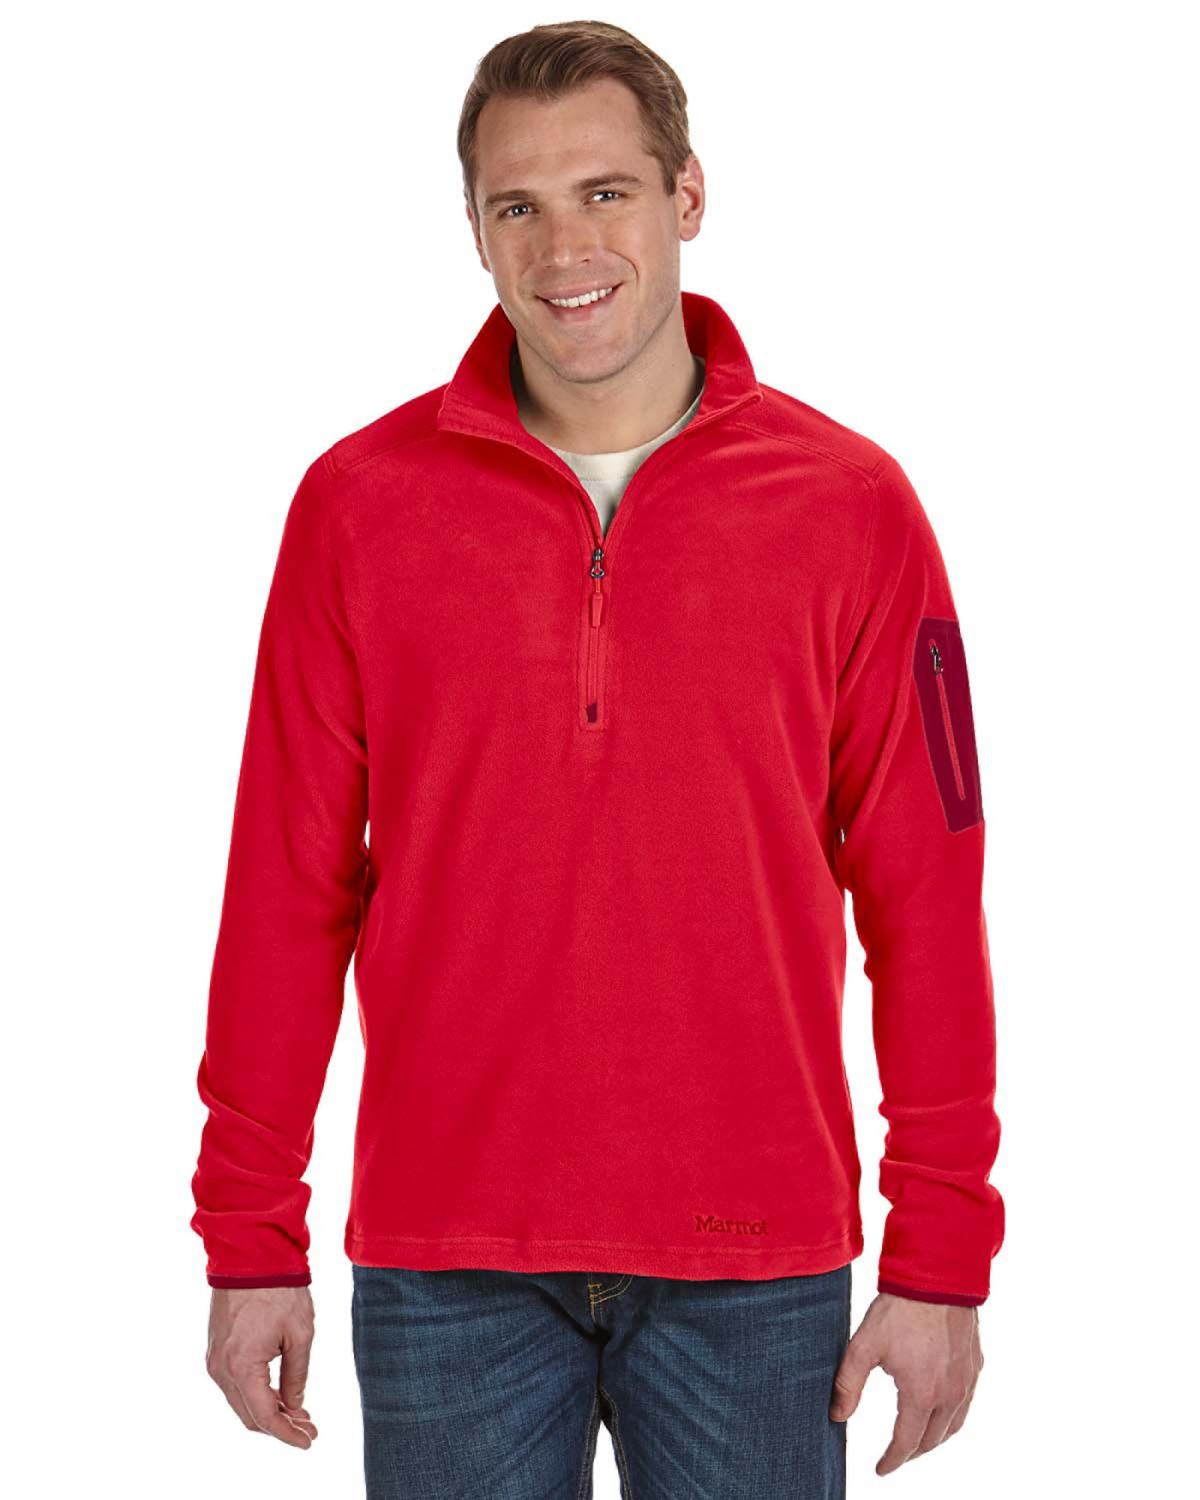 Marmot - 98130, Men's Reactor Half-Zip - Logo Masters International